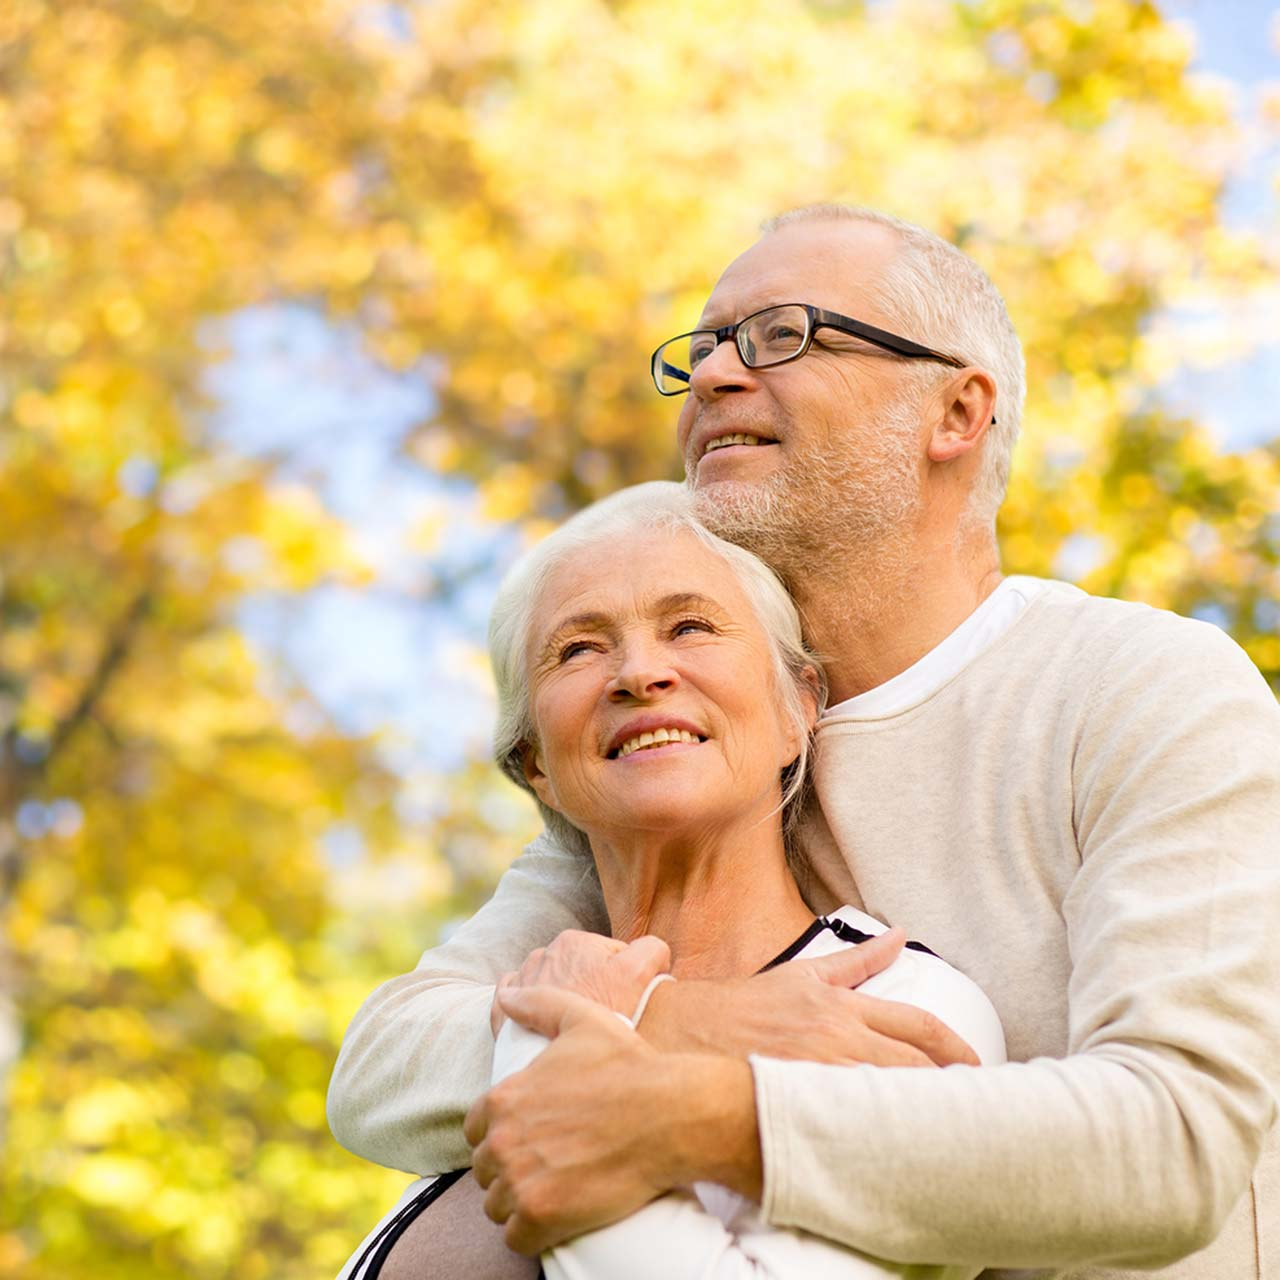 Travel Insurance For Seniors With Heart Conditions